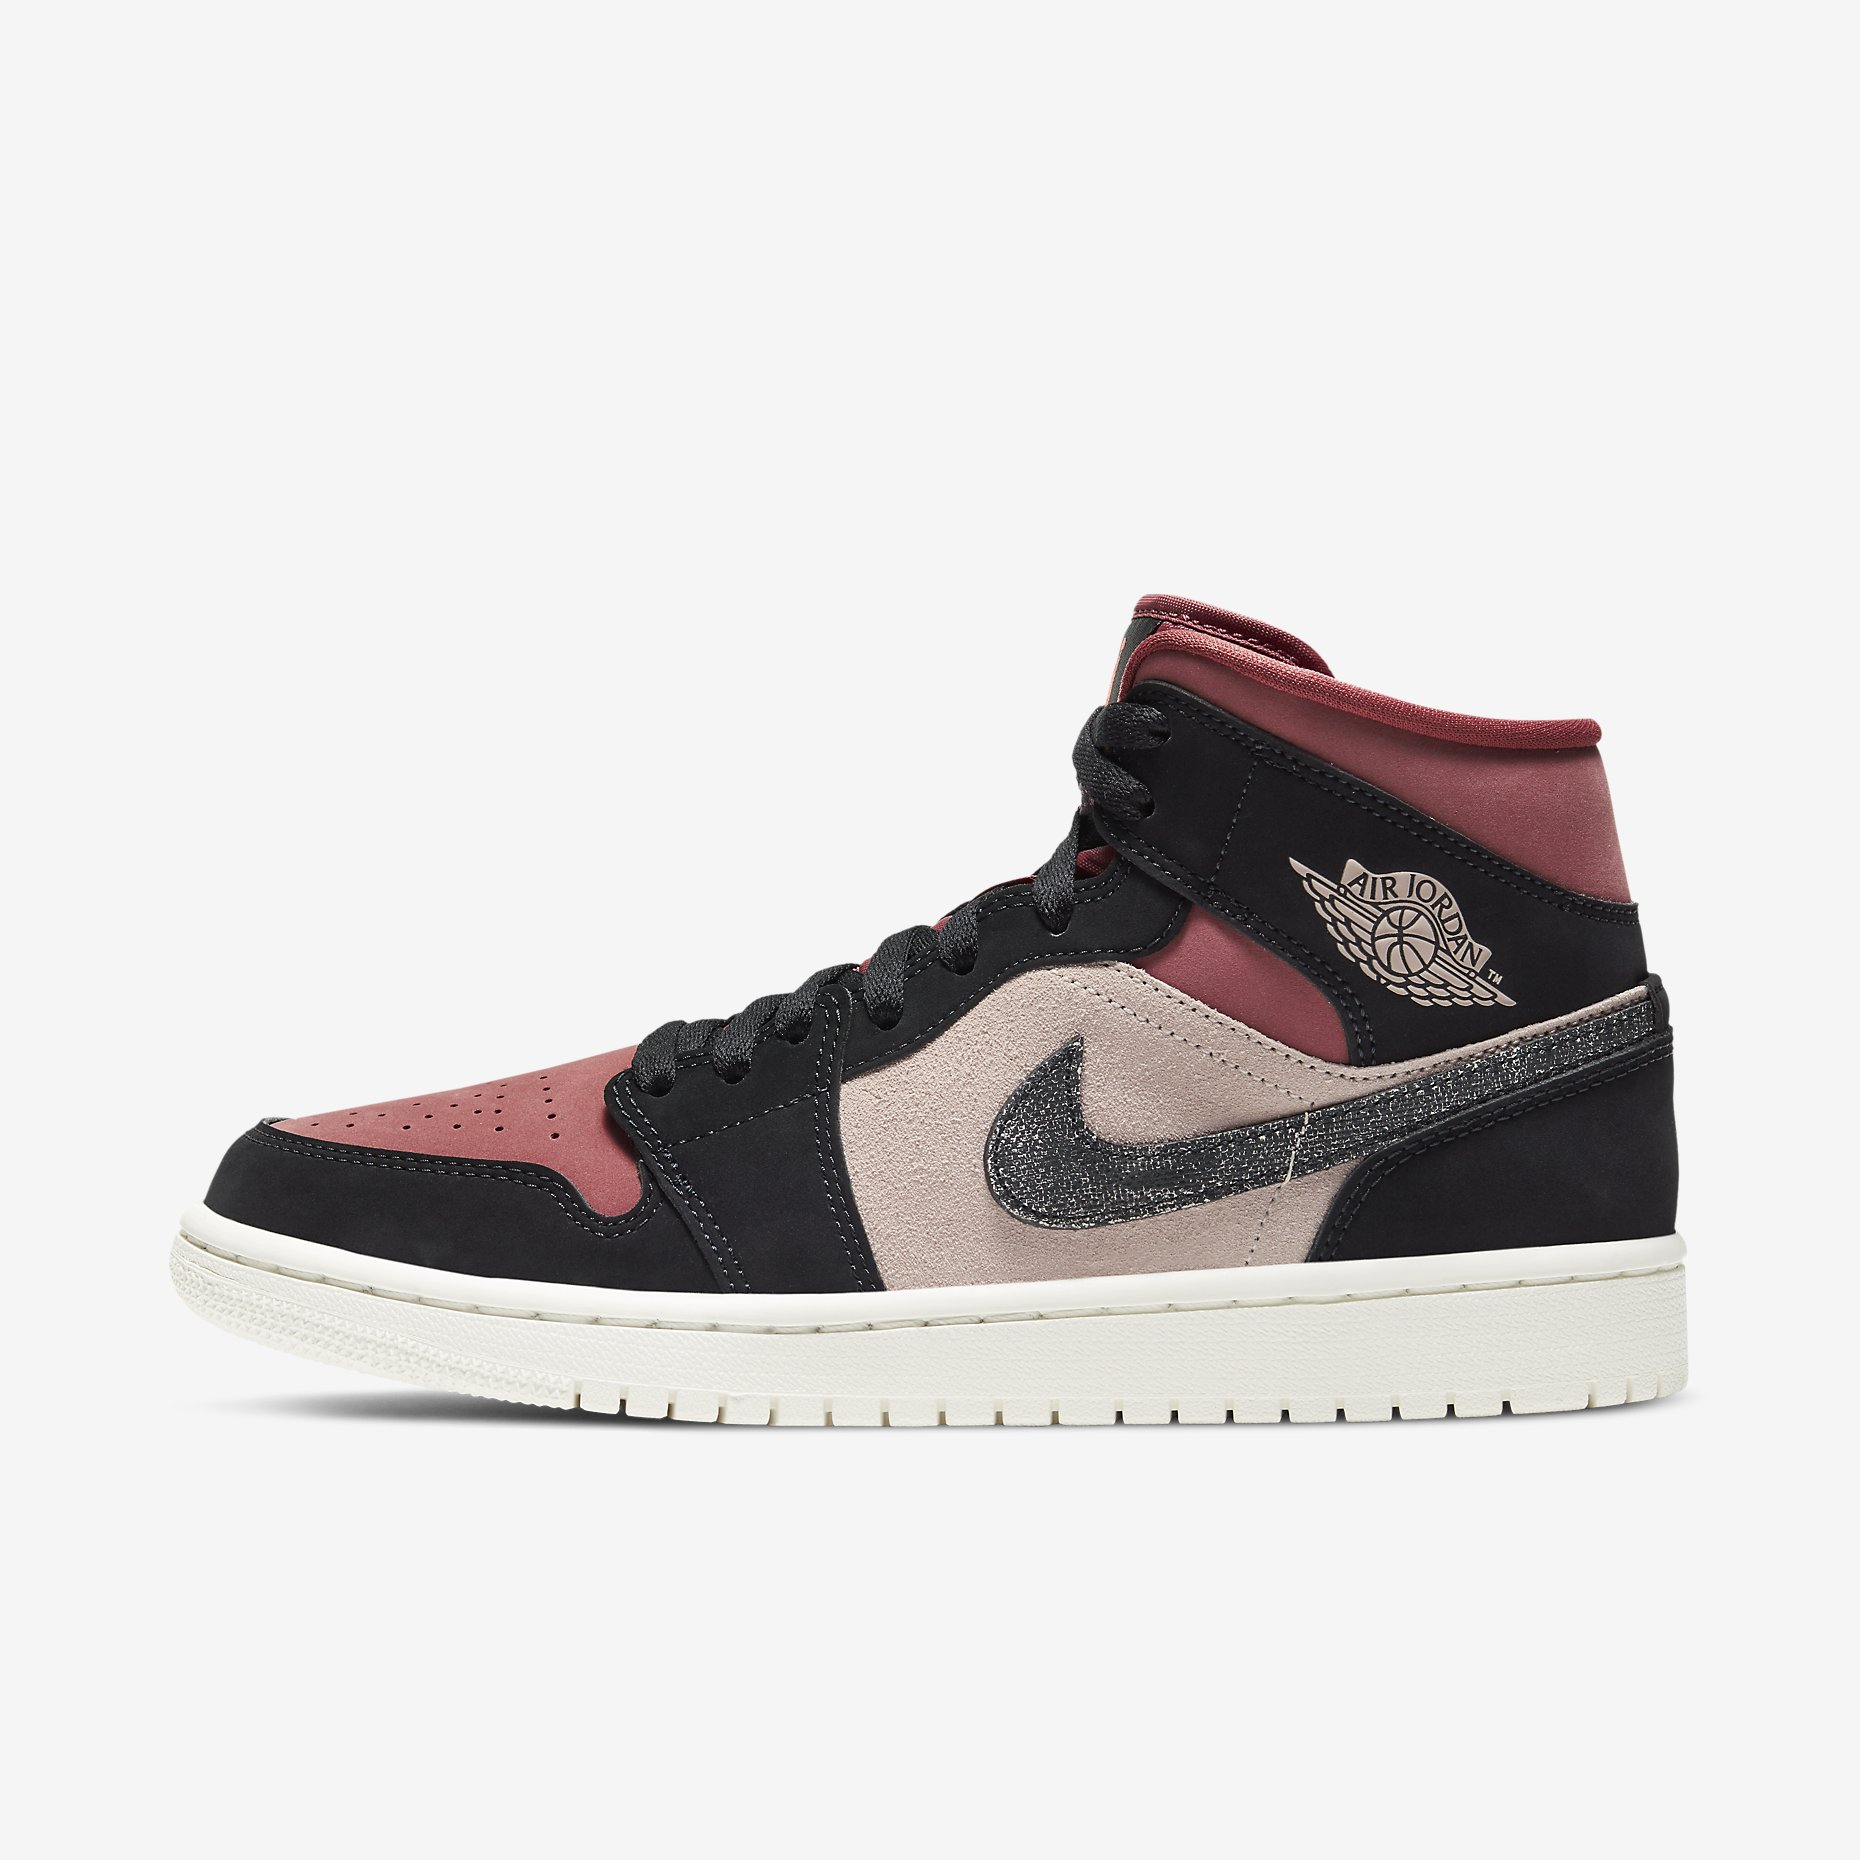 Women's Air Jordan 1 Mid 'Canyon Rust'}